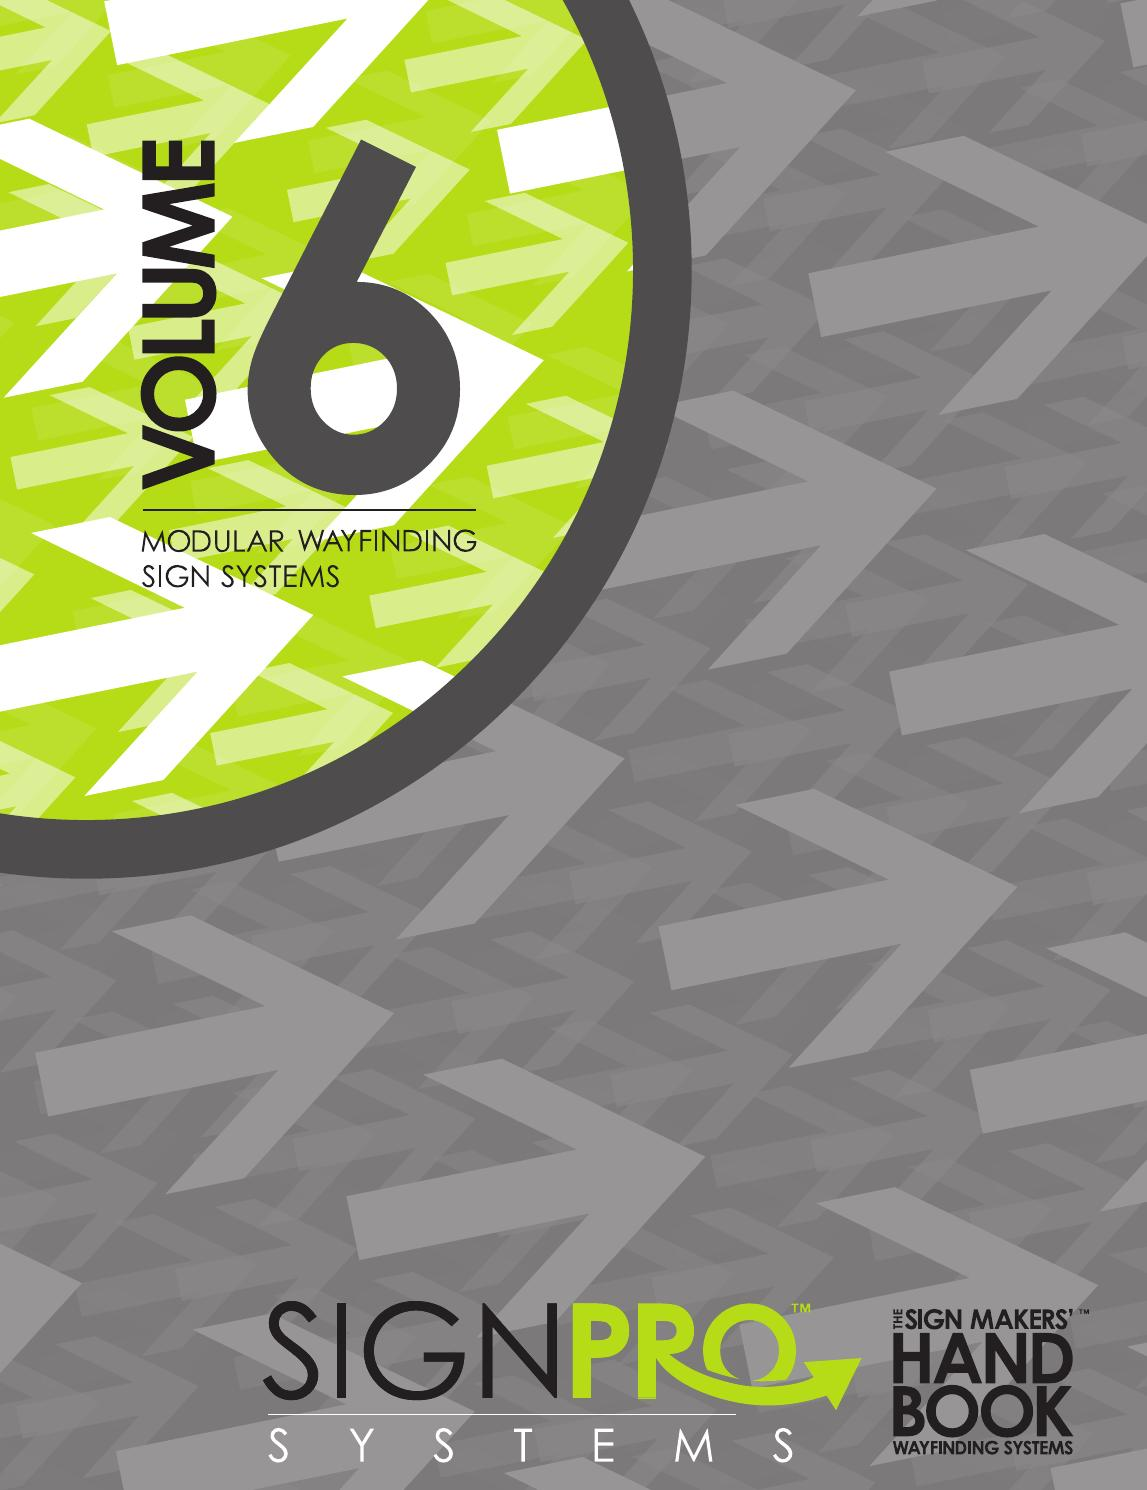 Signpro systems catalog 2016 by orbus exhibit & display group   issuu